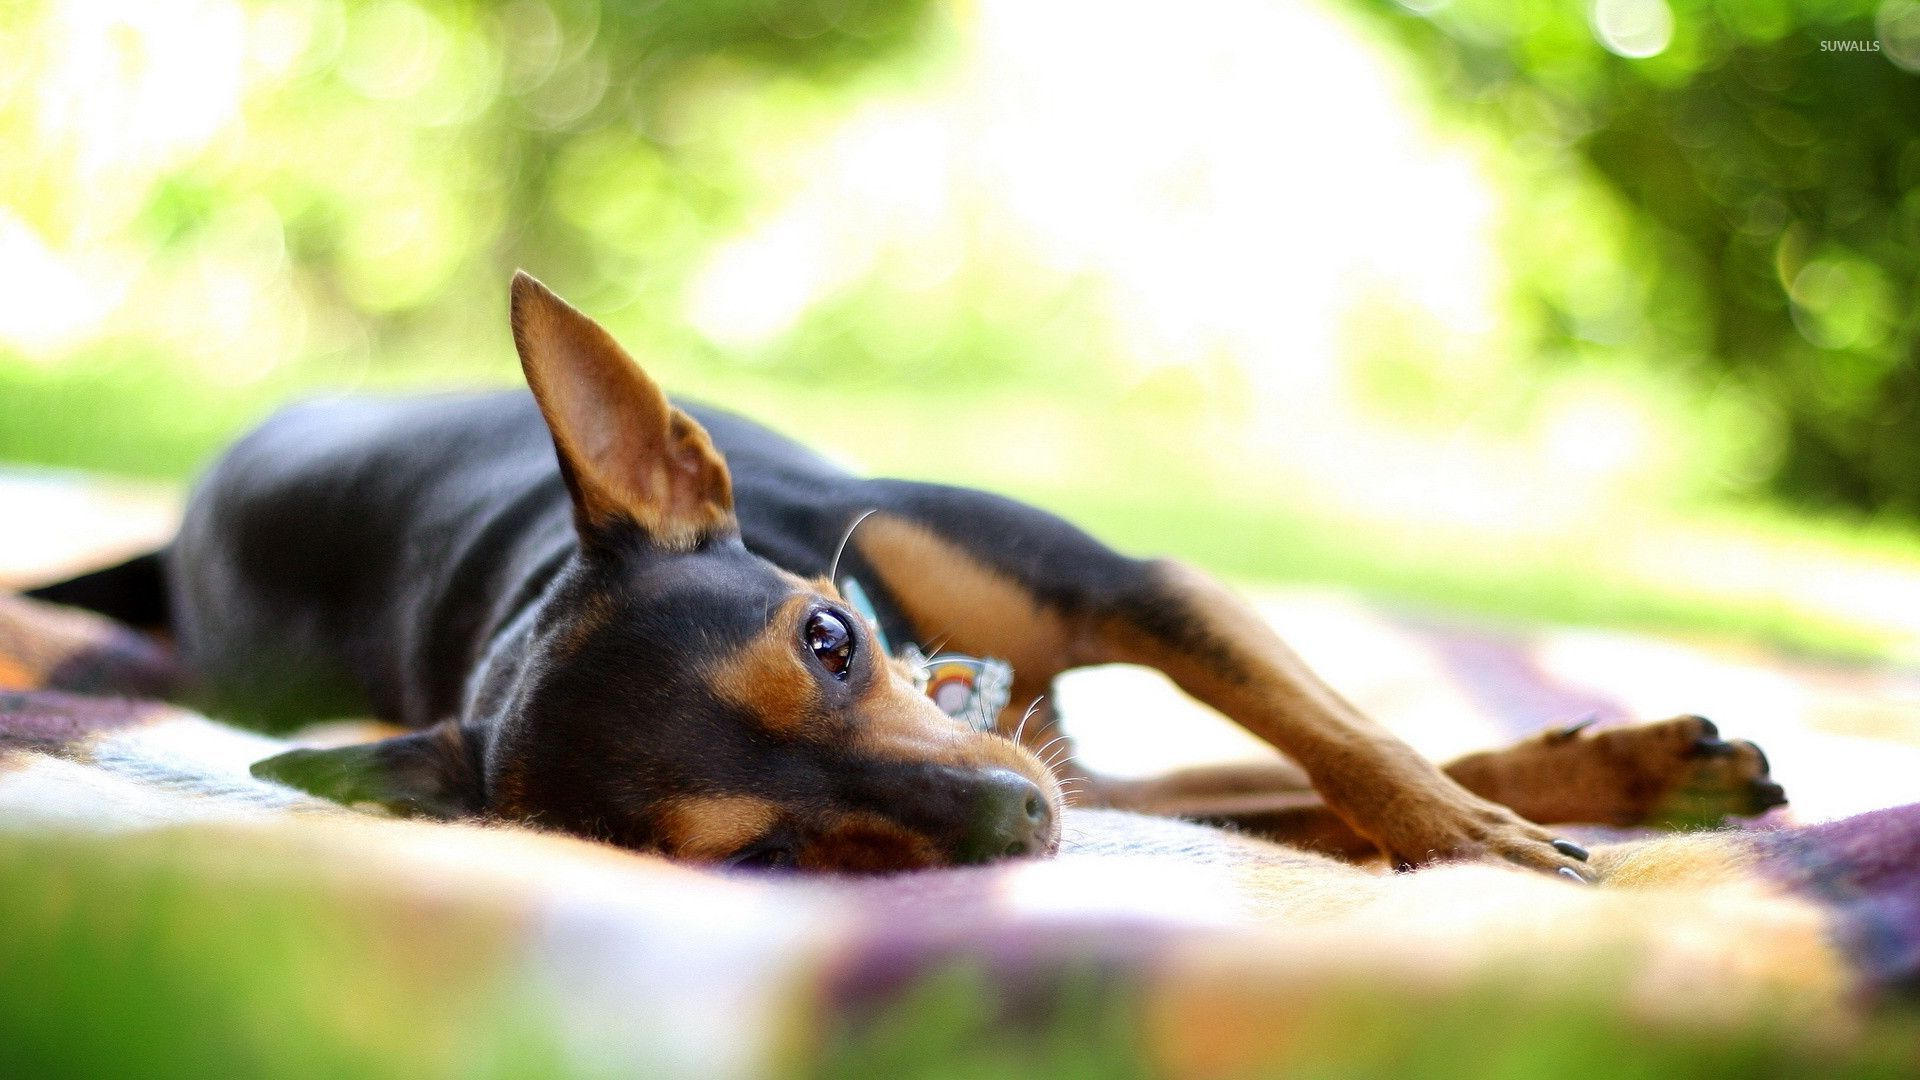 Lazy chihuahua wallpaper animal wallpapers 27470 lazy chihuahua wallpaper voltagebd Images